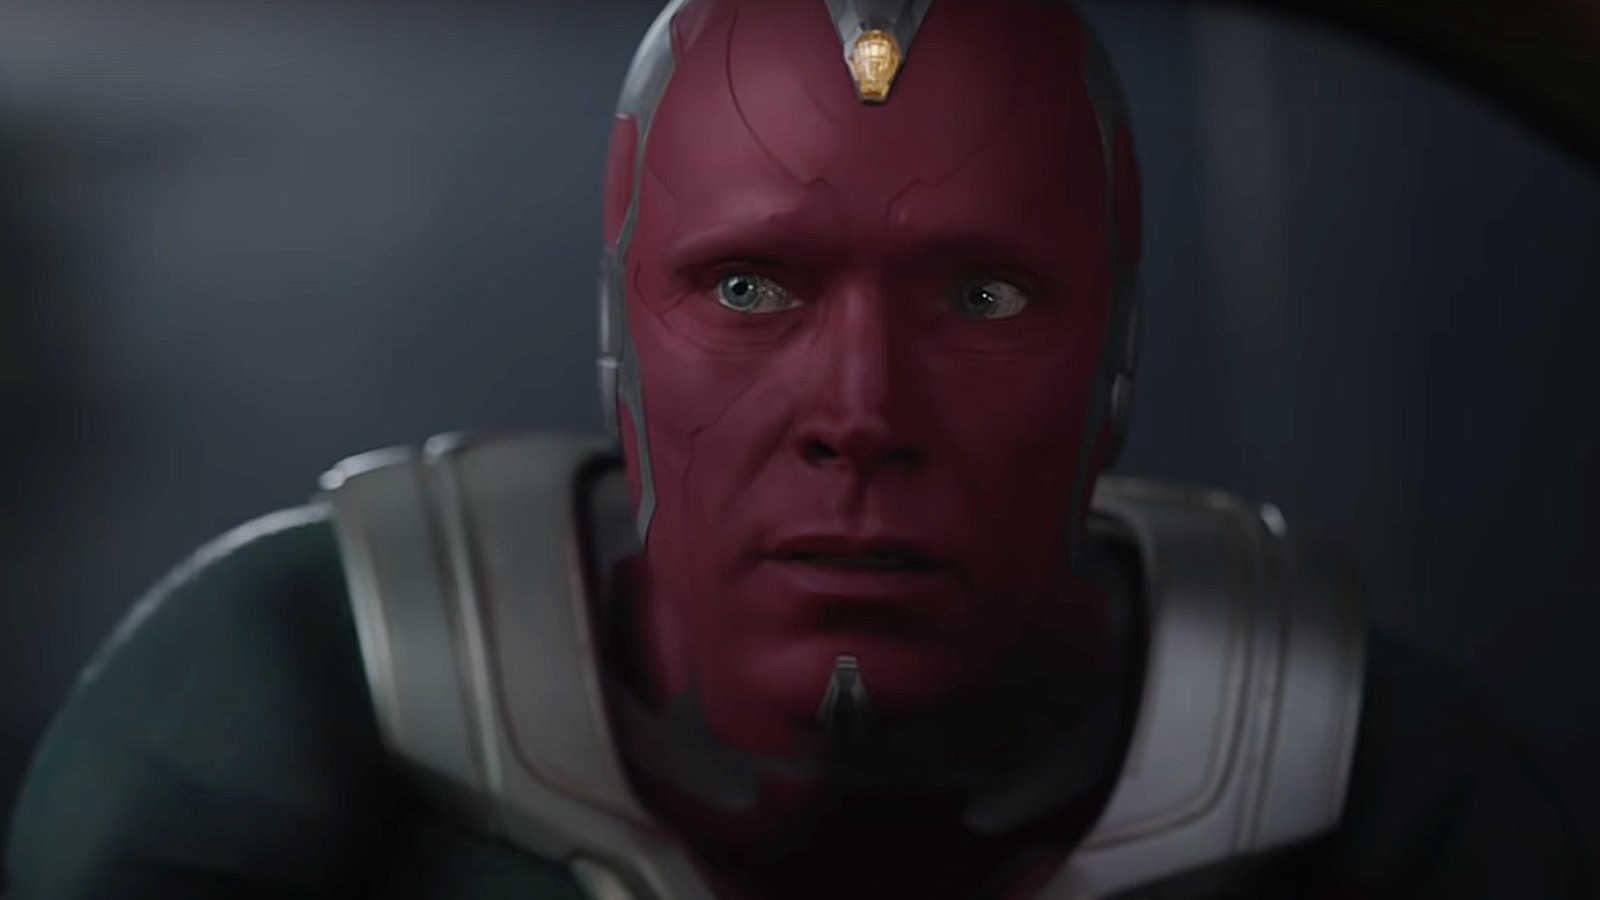 Vision in Marvel's WandaVision trailer